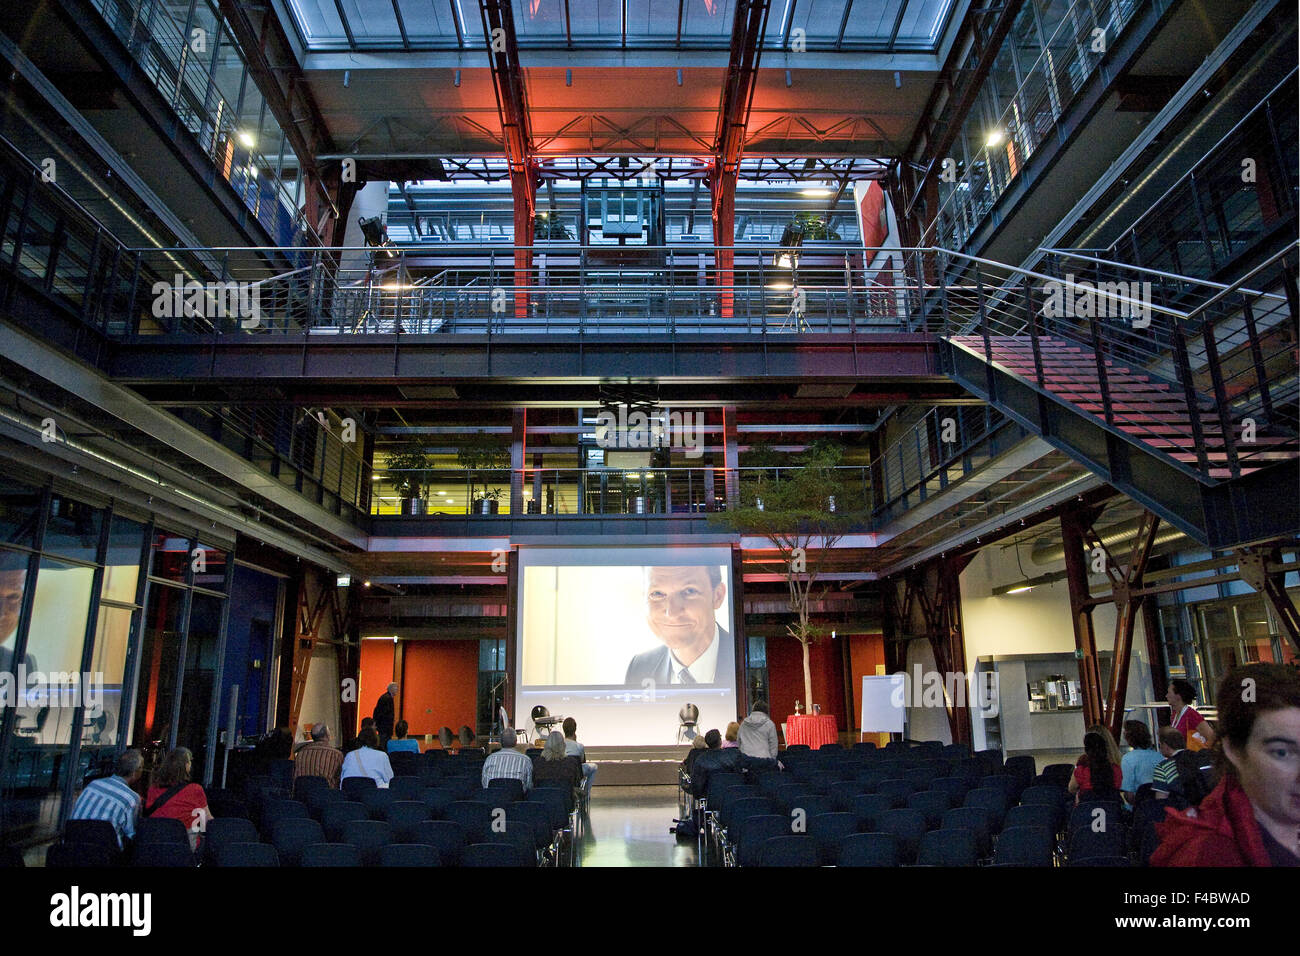 Event extra layer, Gelsenkirchen, Germany - Stock Image